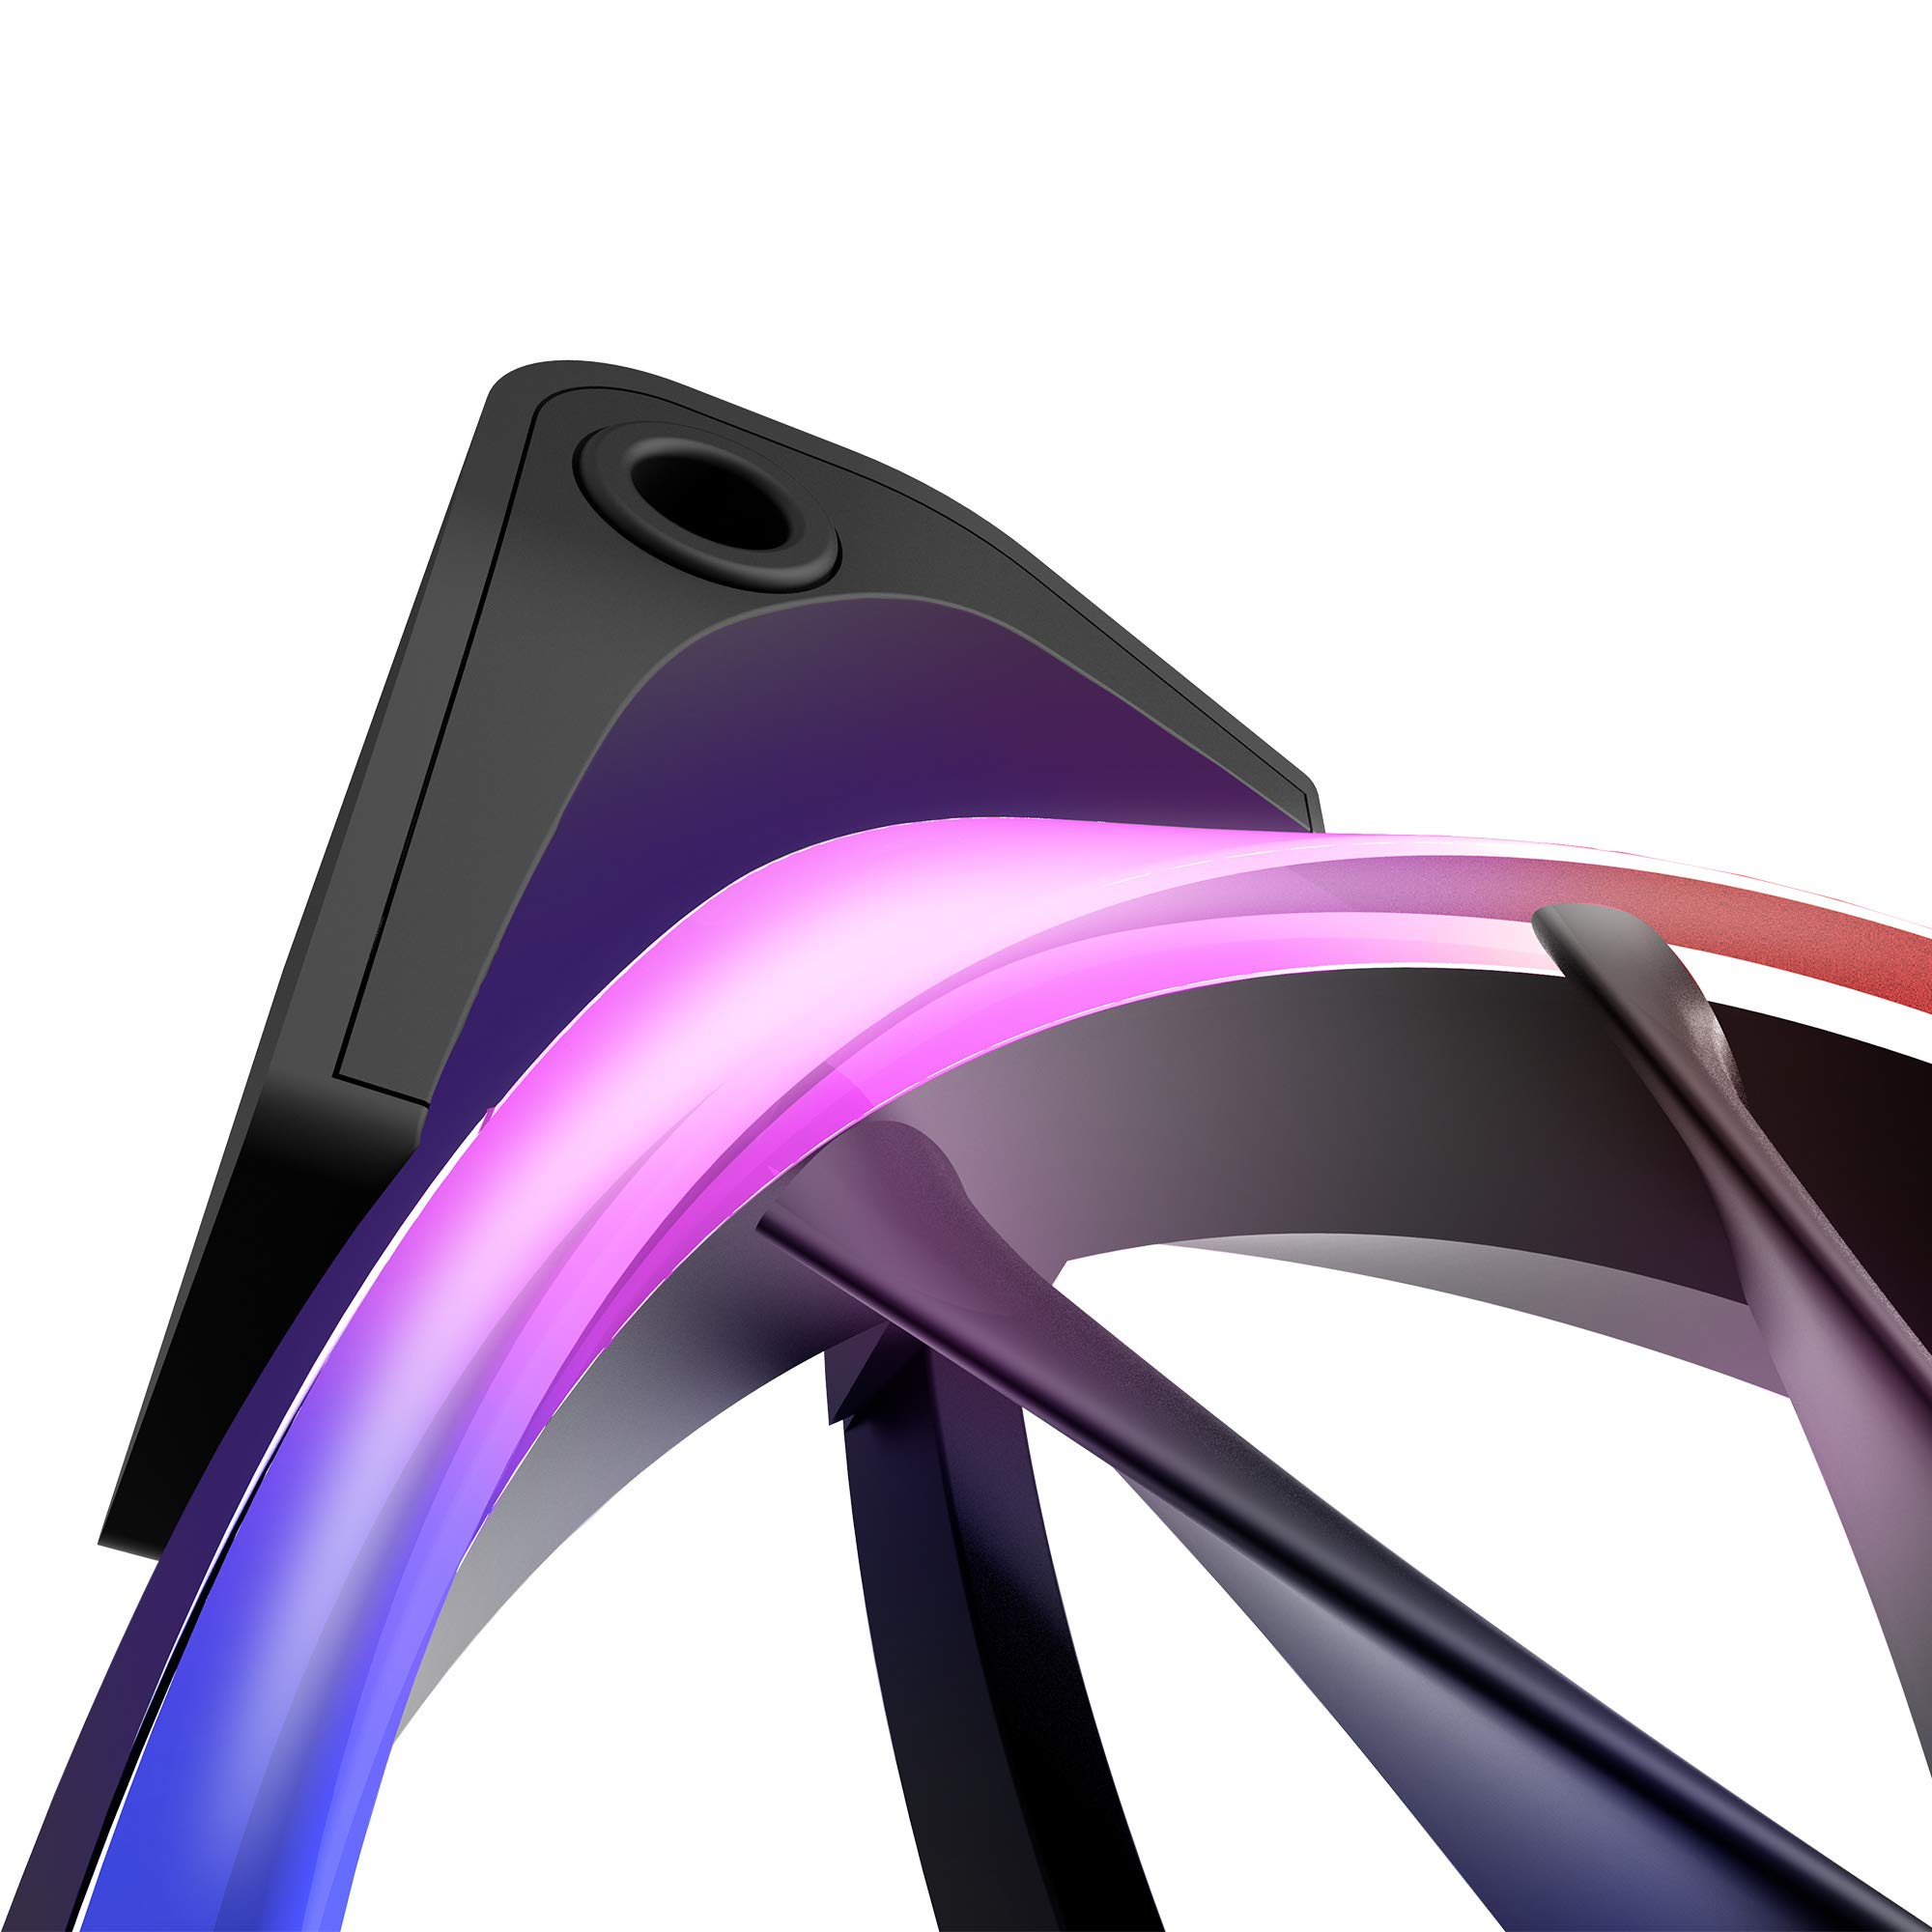 NZXT AER RGB 2 - 3-Pack of 120mm RGB PWM Fans with Hue 2 Lighting Controller - Advanced Lighting Customizations - LED RGB PWM Fans - Winglet Tips - Fluid Dynamic Bearing -  PC Case Fan by NZXT (Image #5)